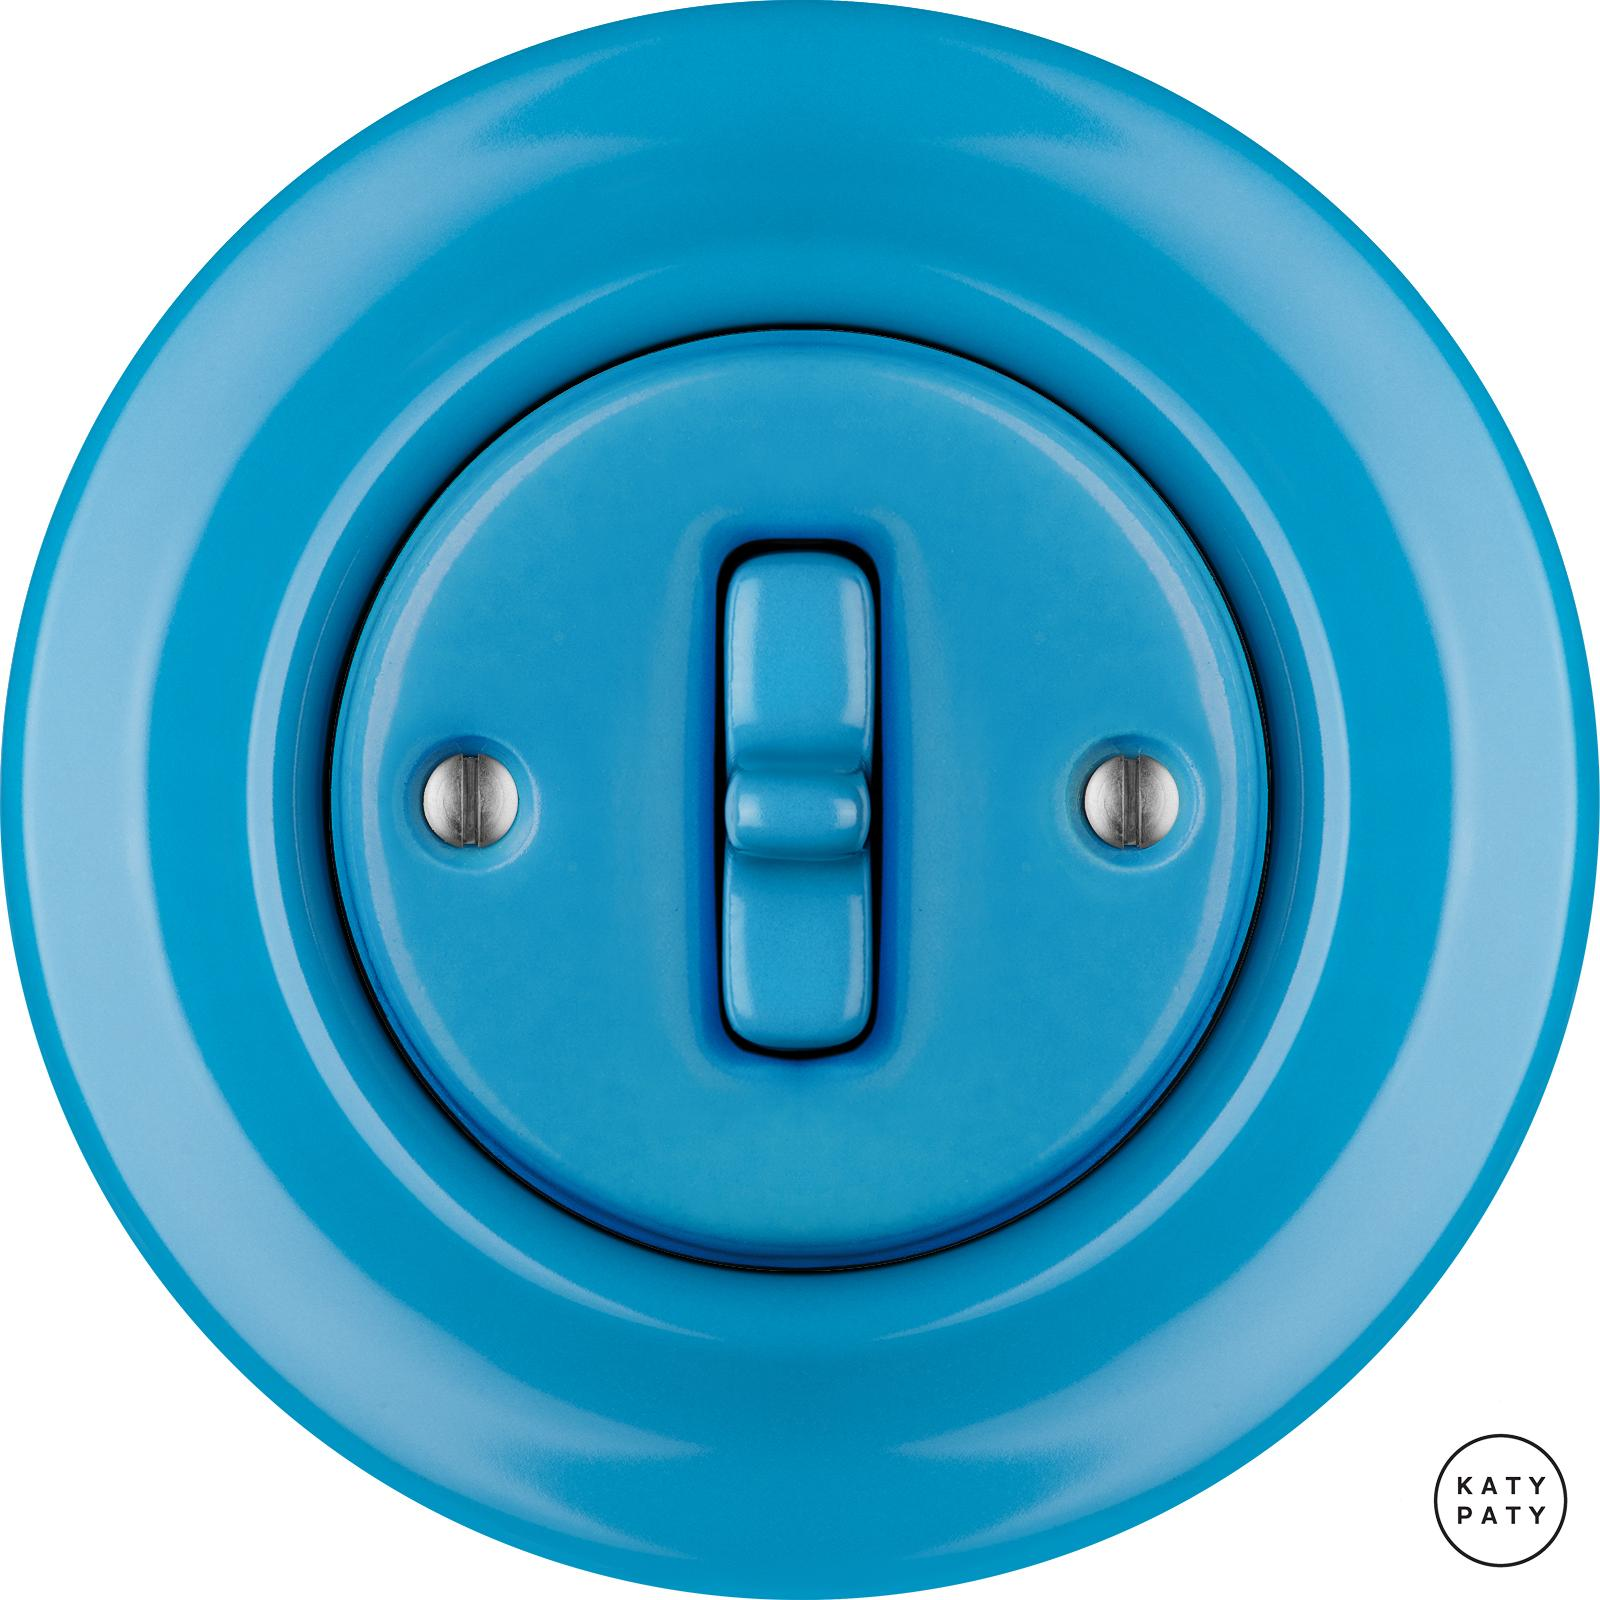 Porcelain Toggle switches - 1 gang ()  - NITOR ARA | Katy Paty